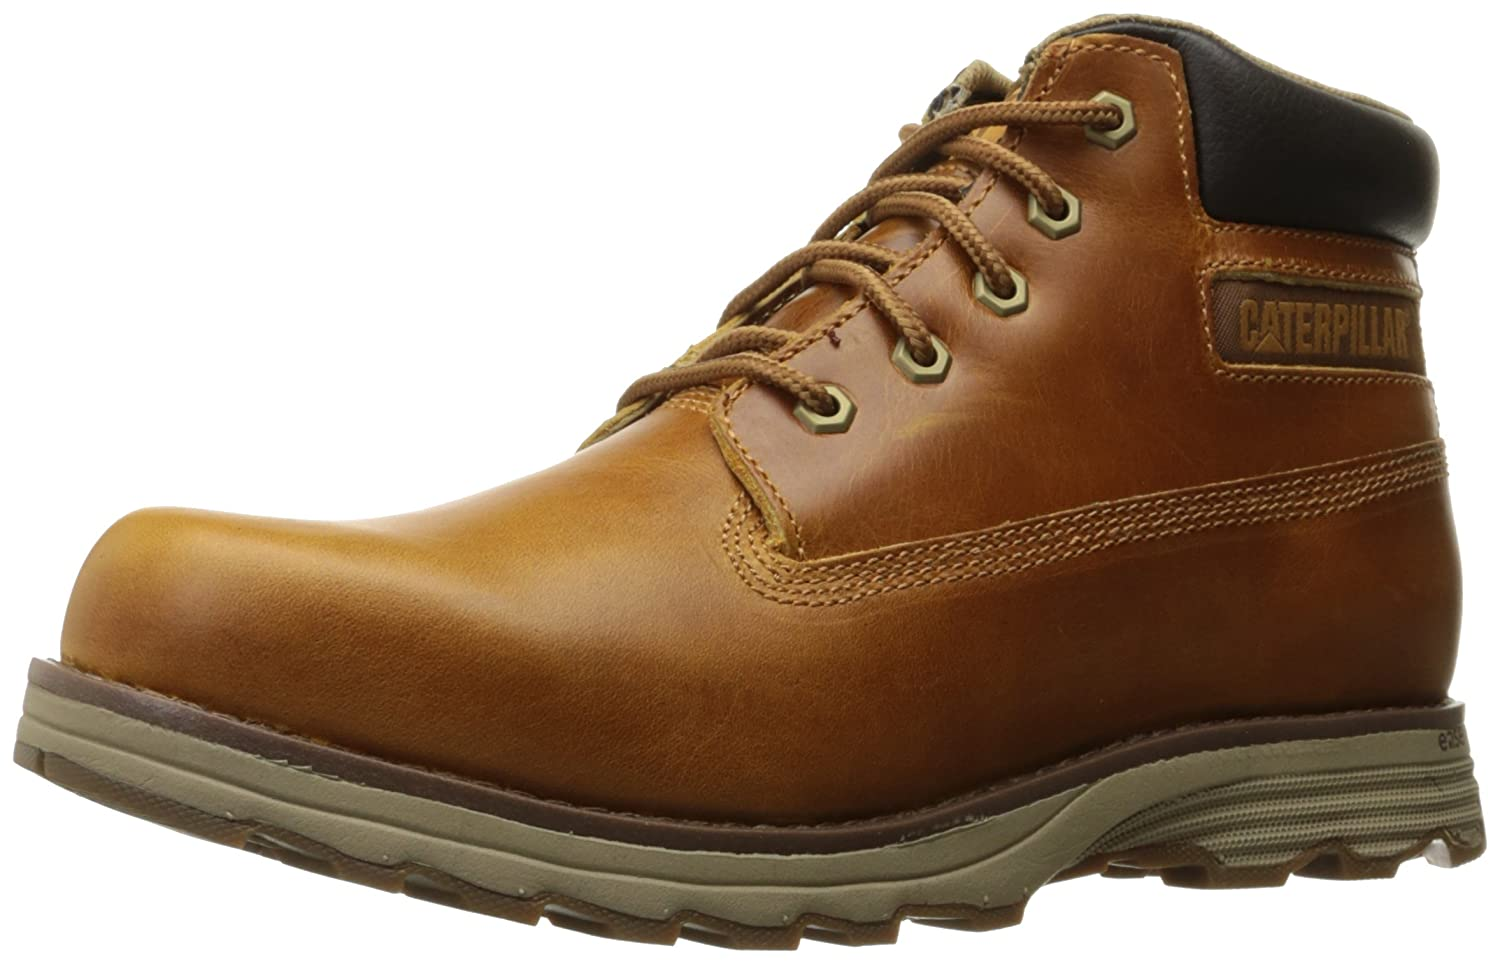 Caterpillar Founder Mens Leather Ankle Boots Brown [並行輸入品] B01BDTCA0Y 11.5 D(M) US|Artisan Gold Artisan Gold 11.5 D(M) US